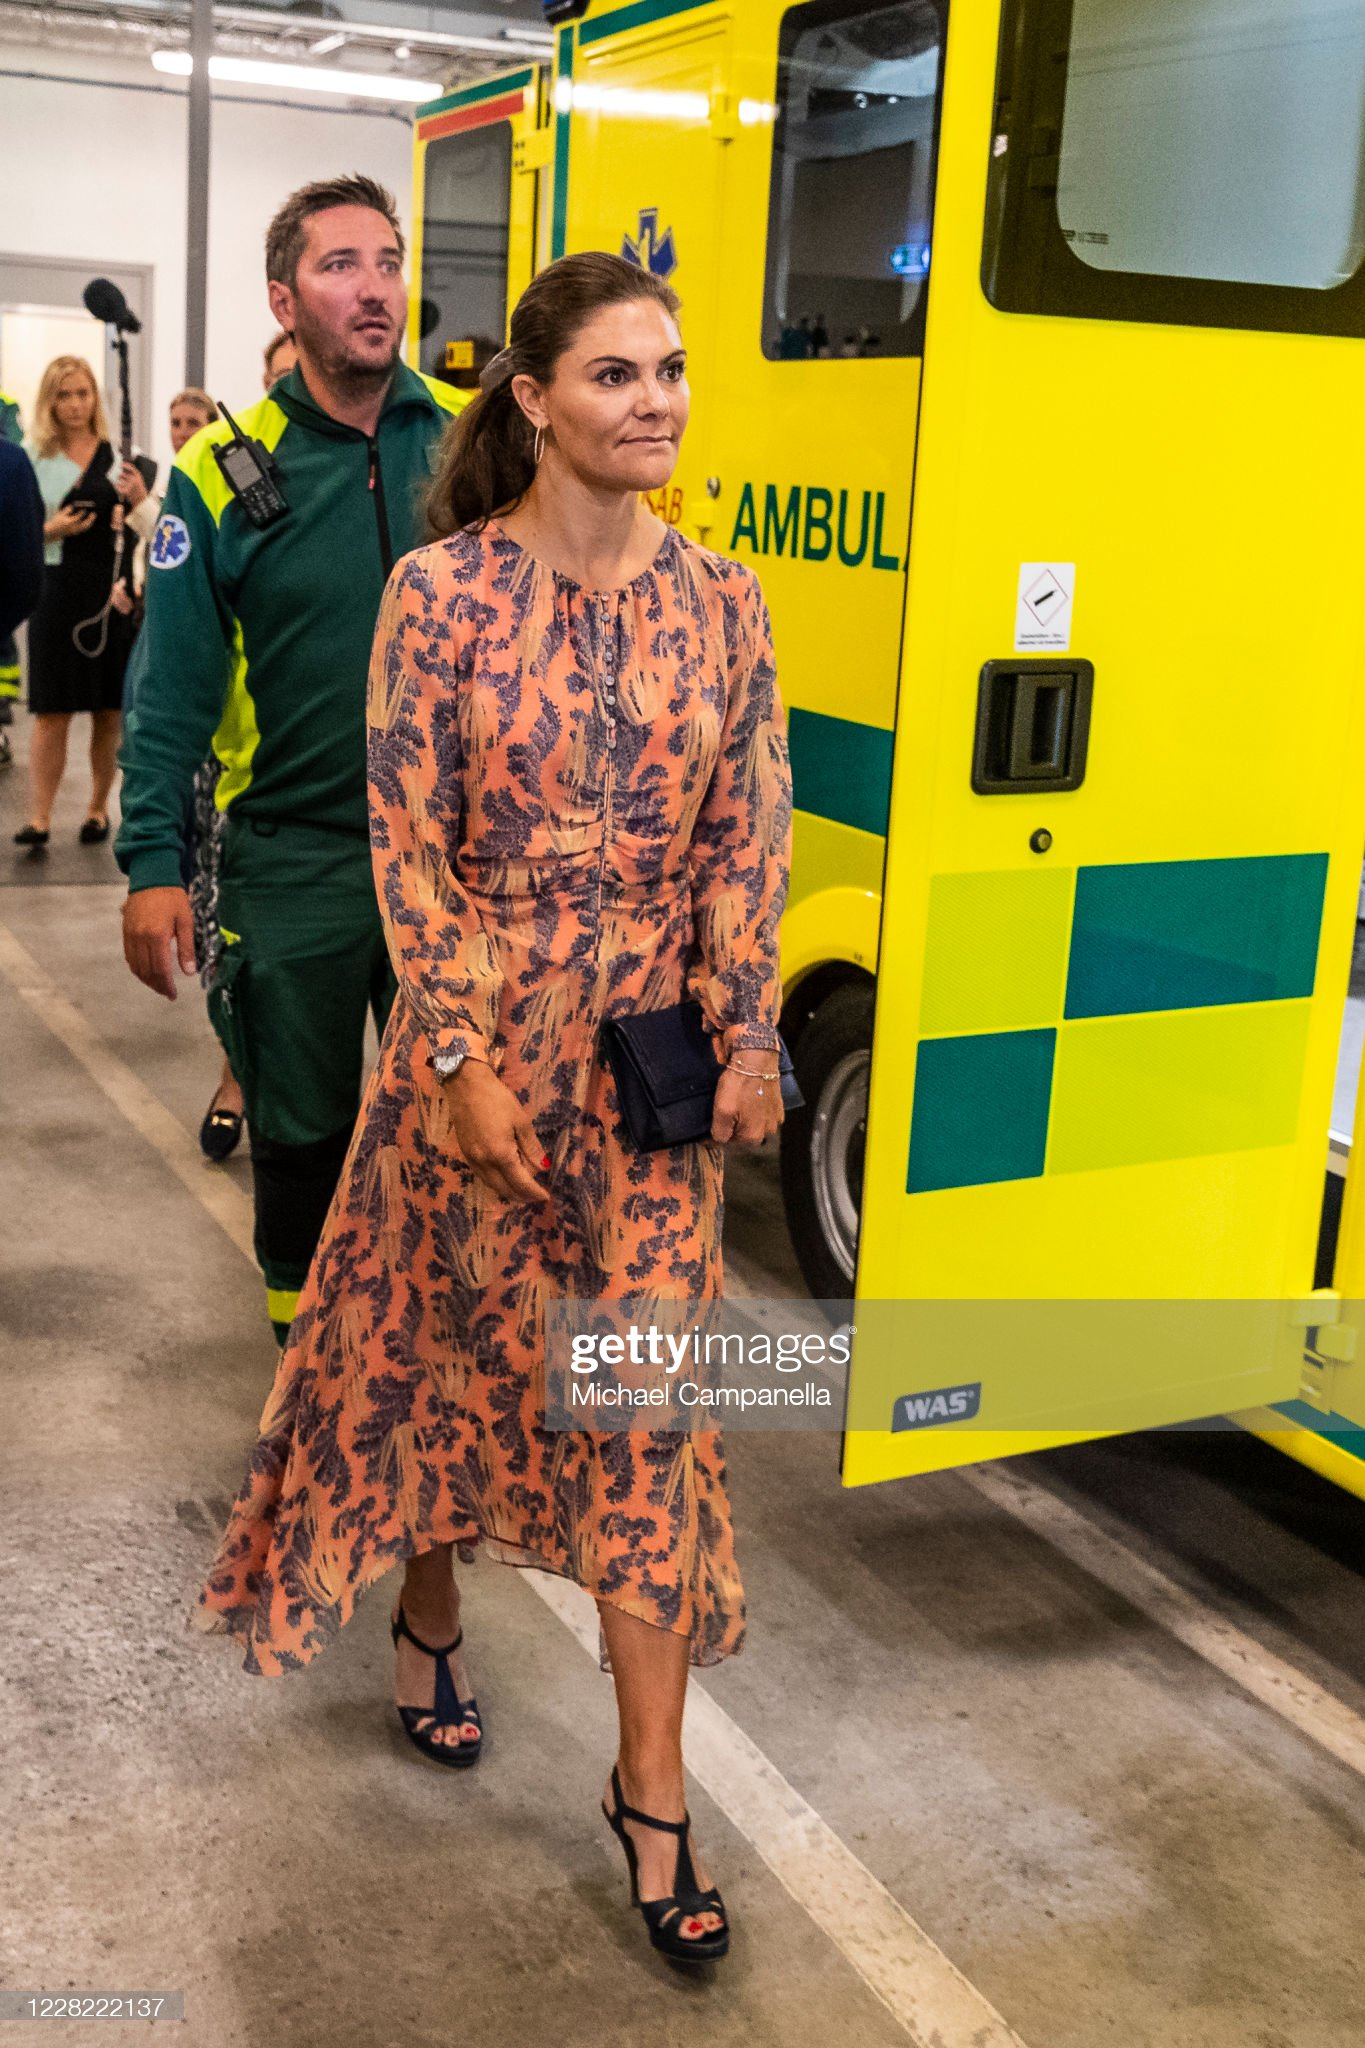 crown-princess-victoria-of-sweden-visits-an-ambulance-station-in-the-picture-id1228222137